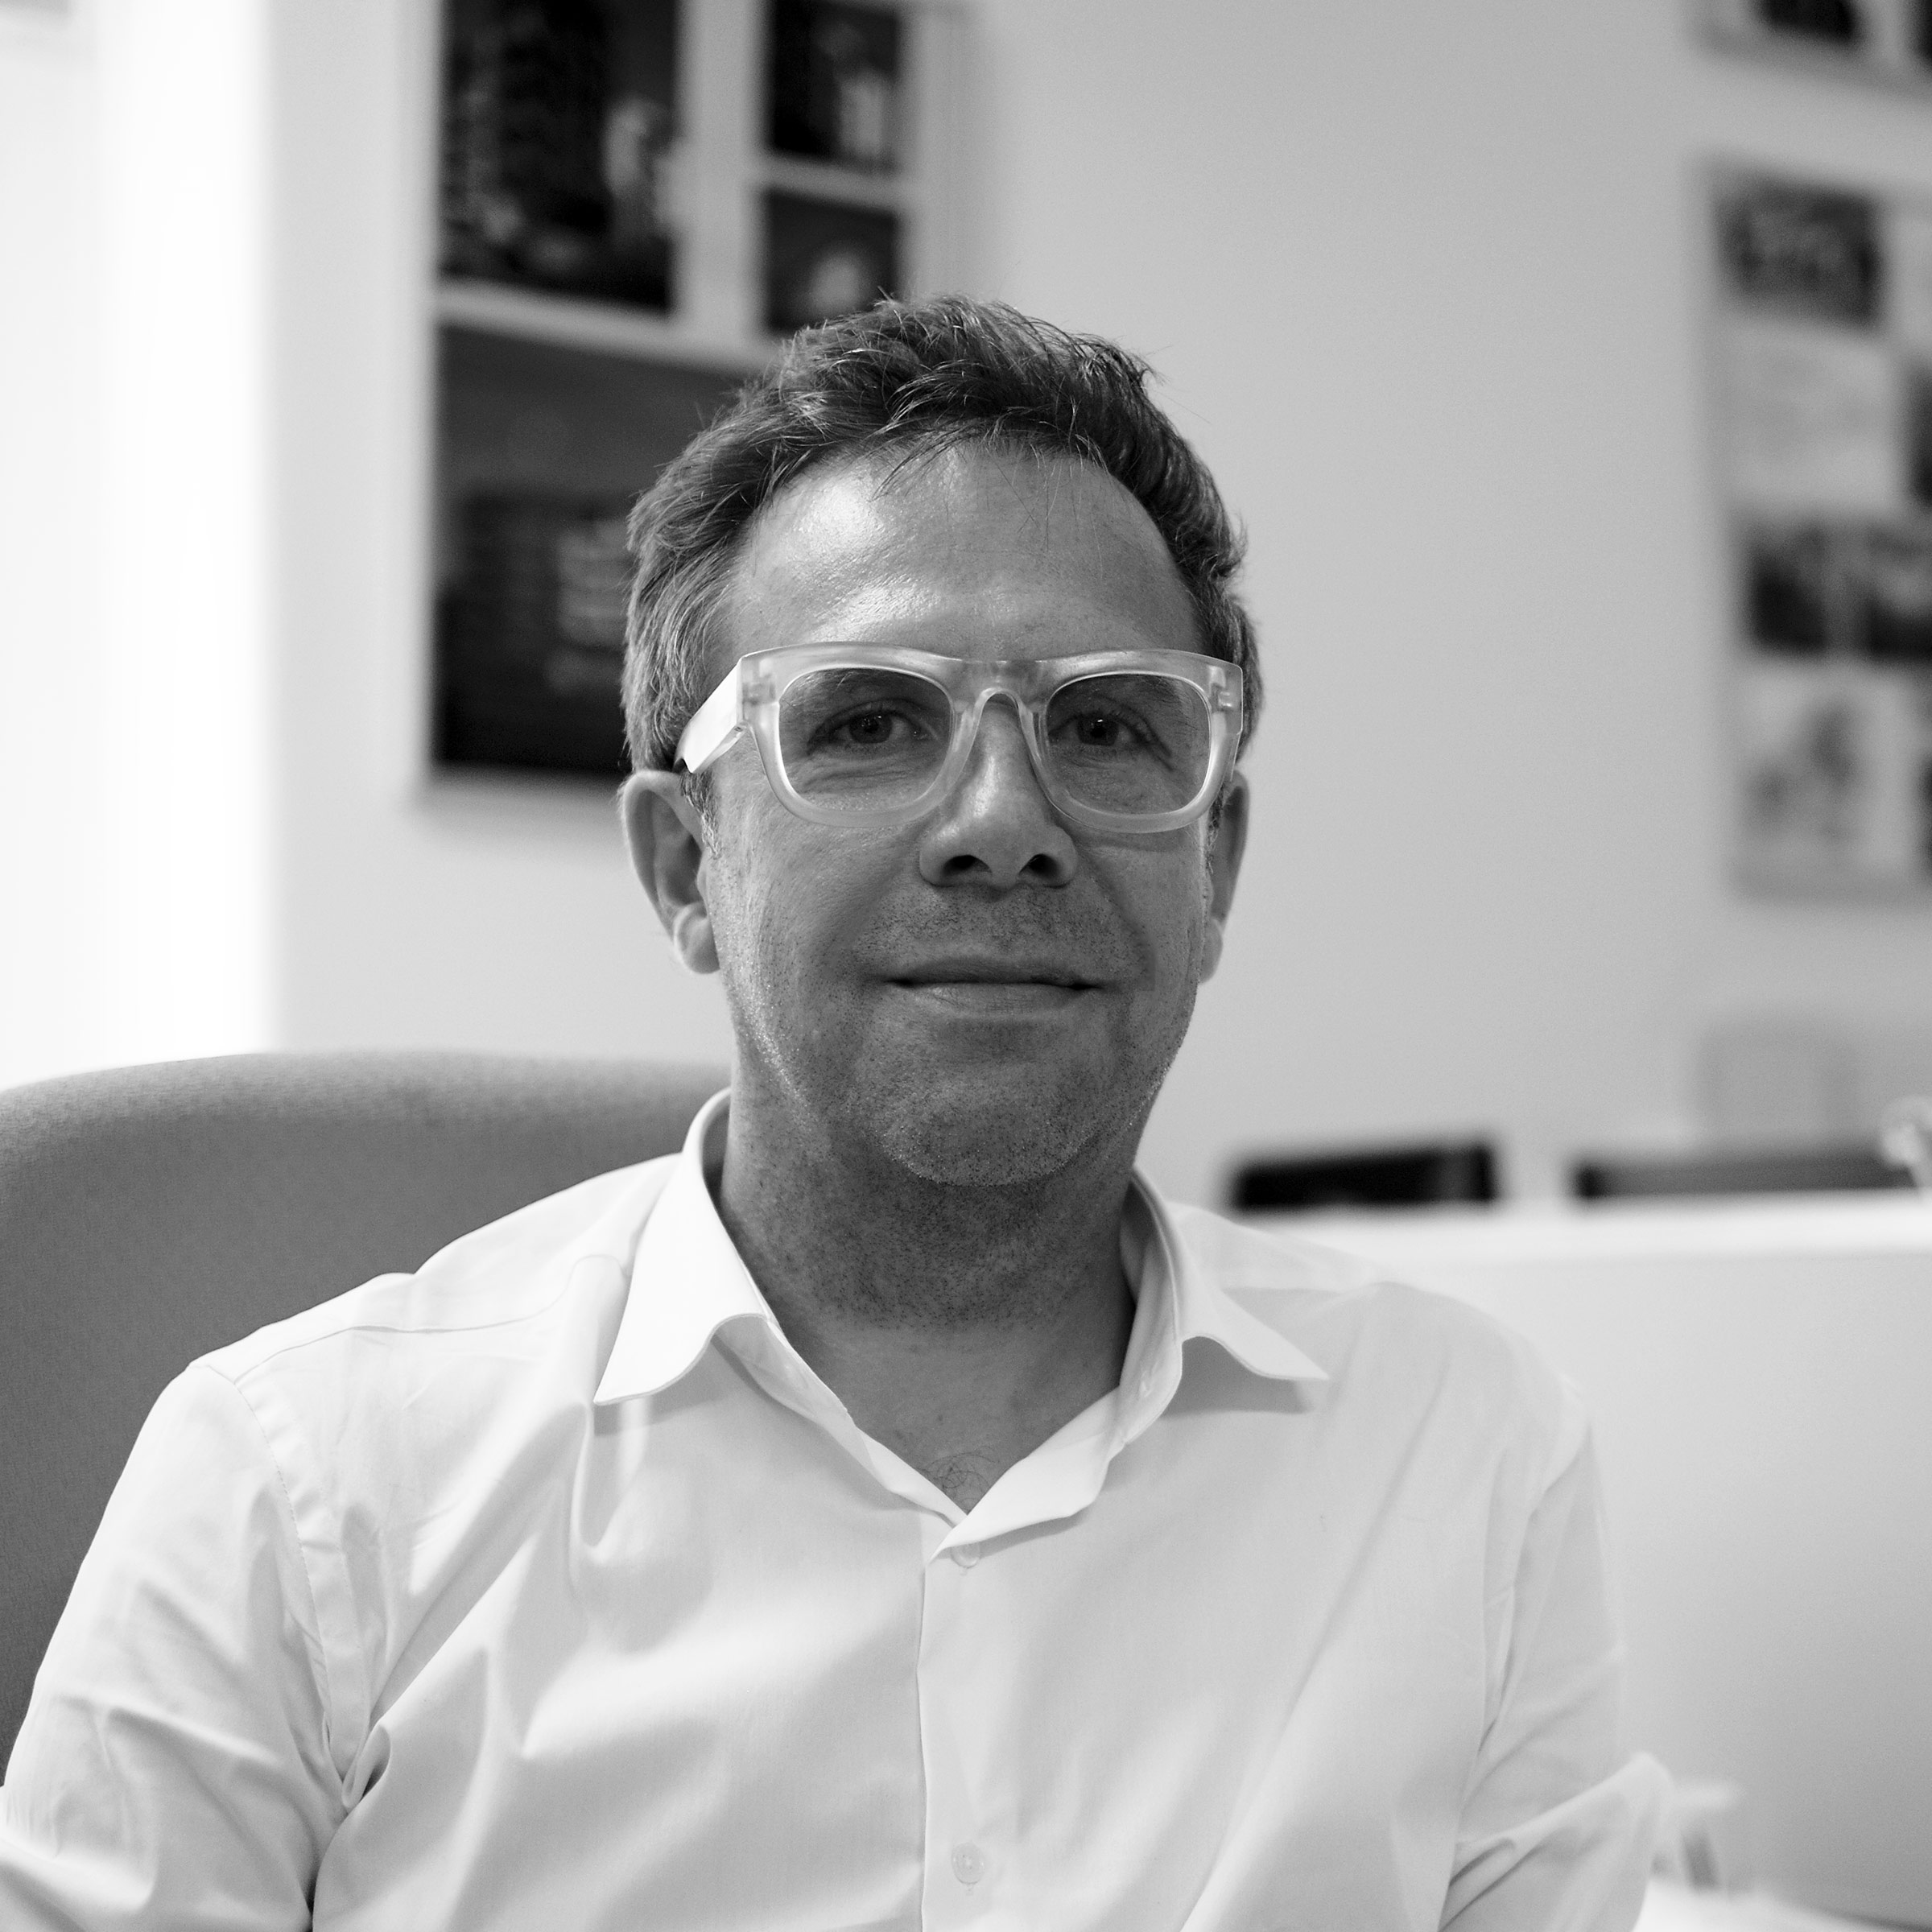 jmarchitects welcomes new Director Juan Piñol to the London Studio